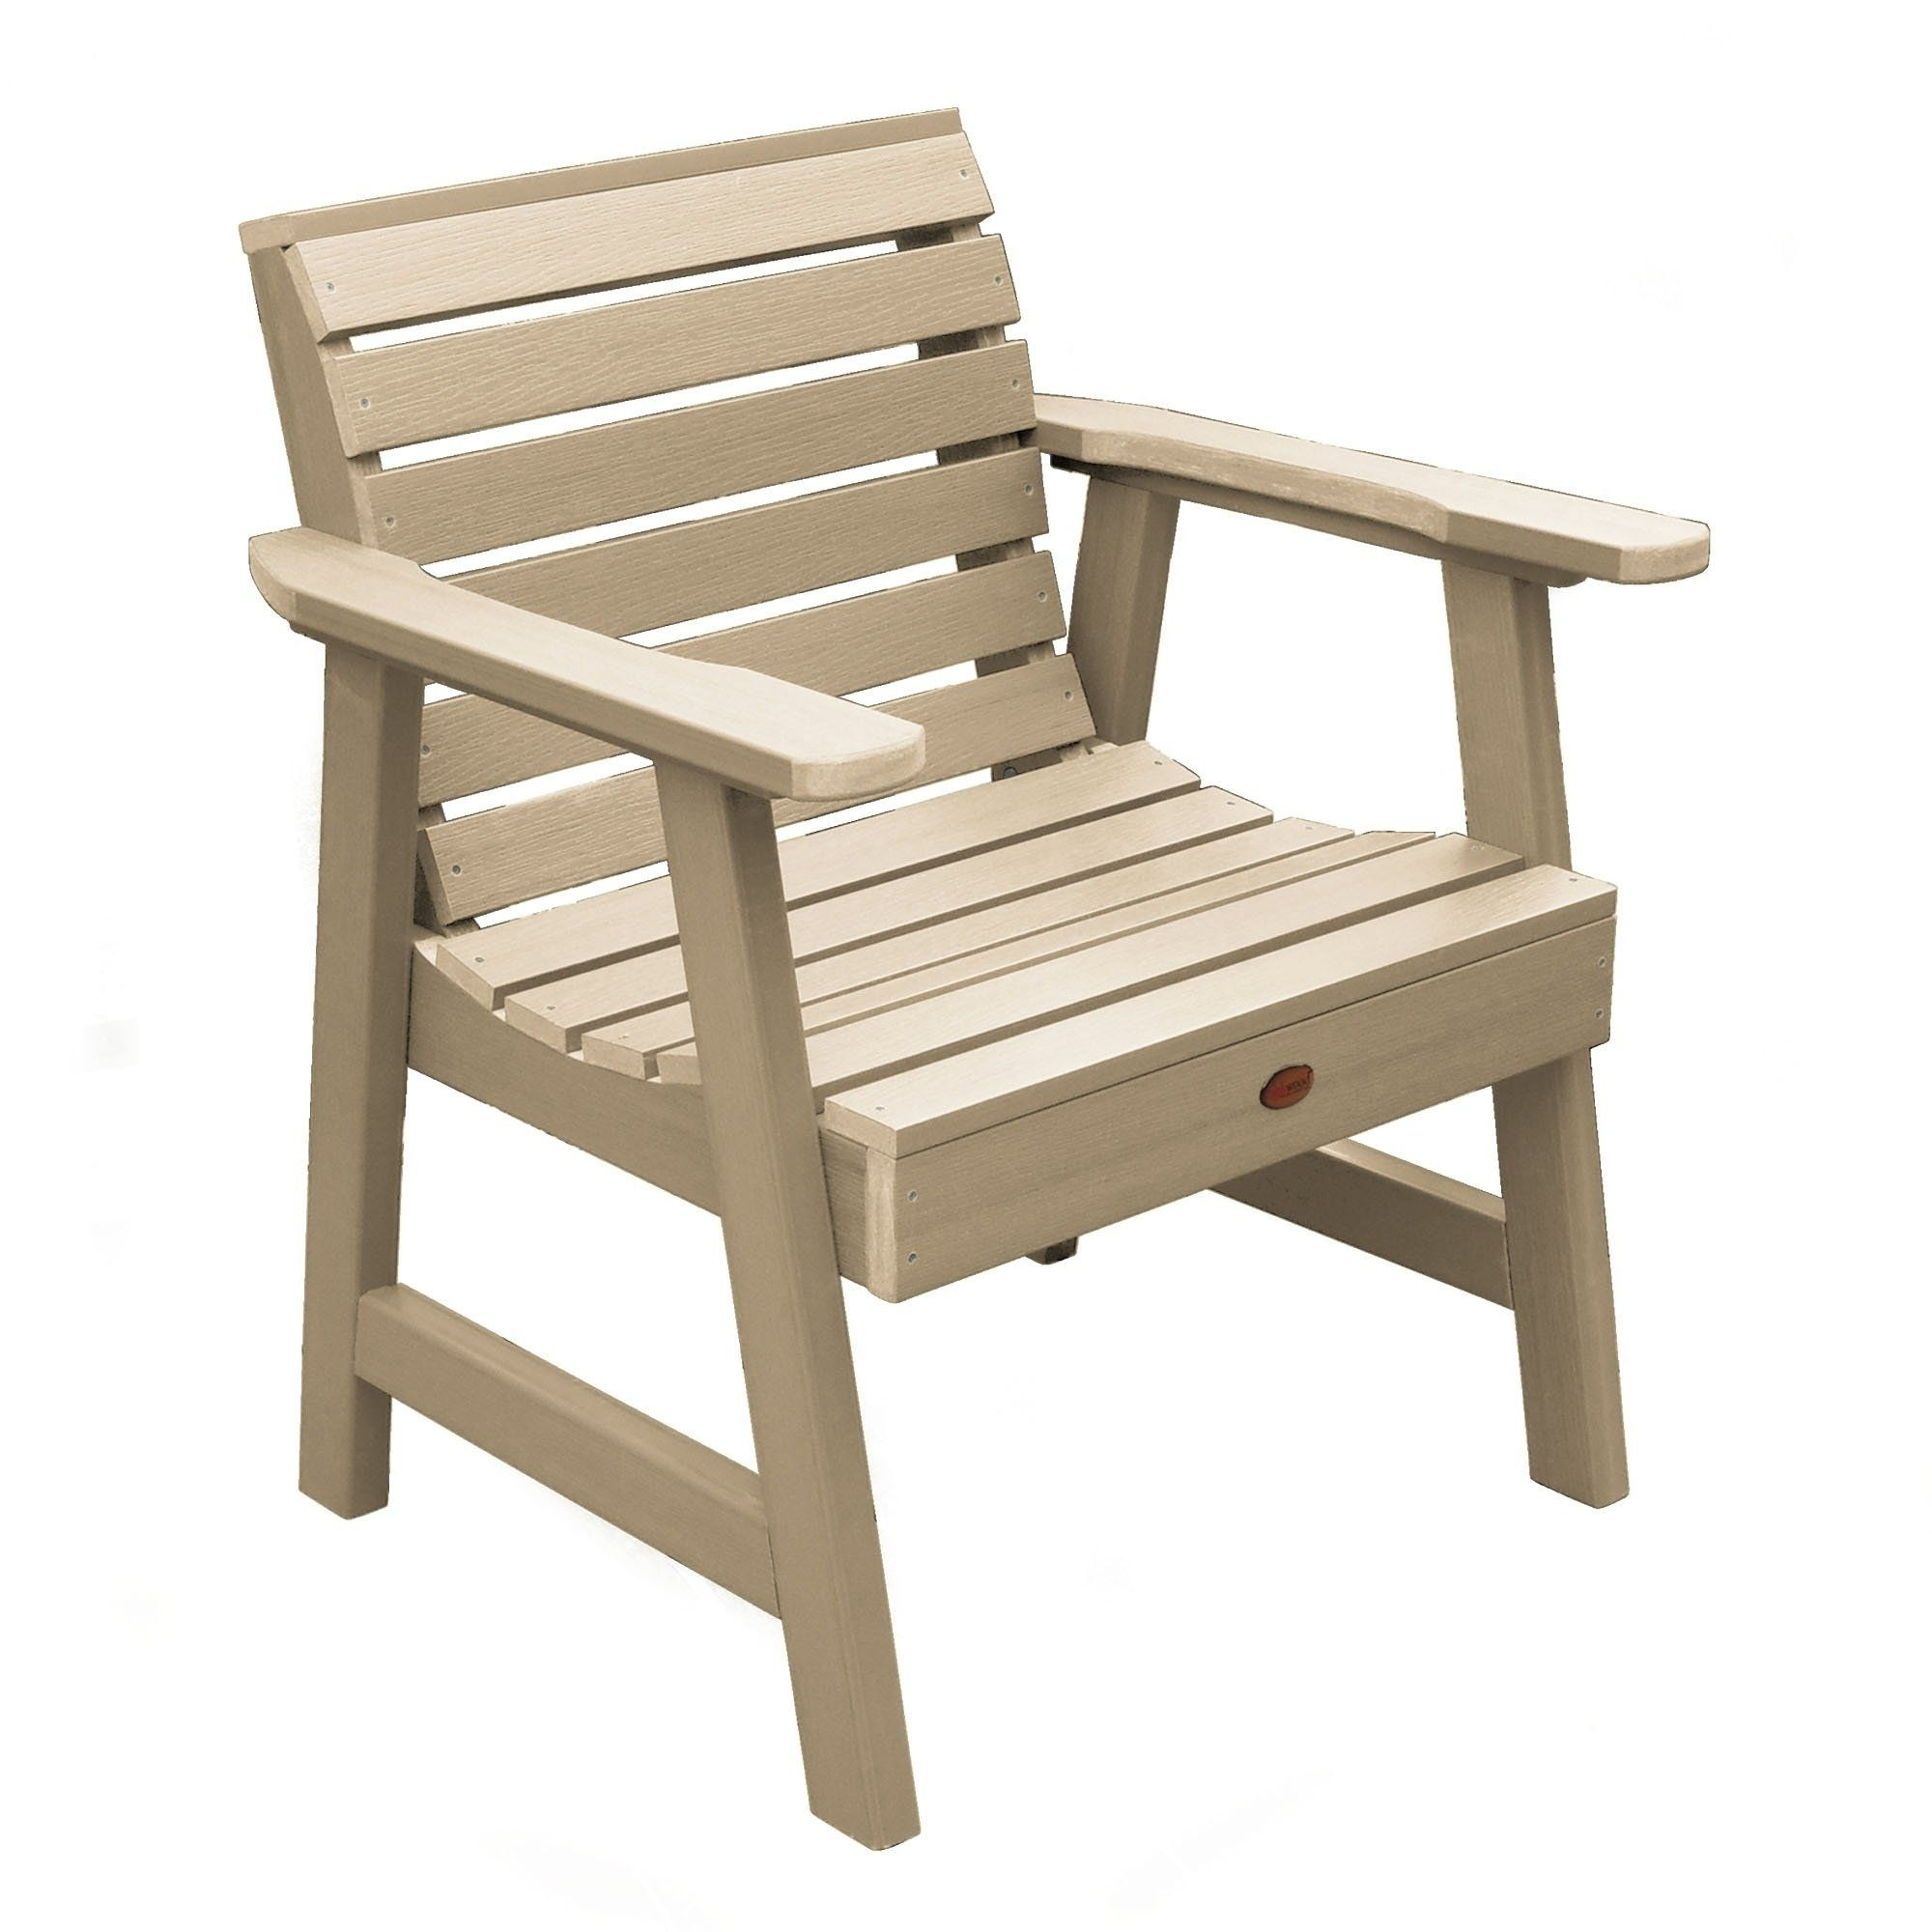 Havenside Home Mandalay Eco Friendly Marine Grade Synthetic Wood Garden Chair Tuscan Taupe Brown P Lounge Chair Outdoor Garden Lounge Chairs Garden Chairs